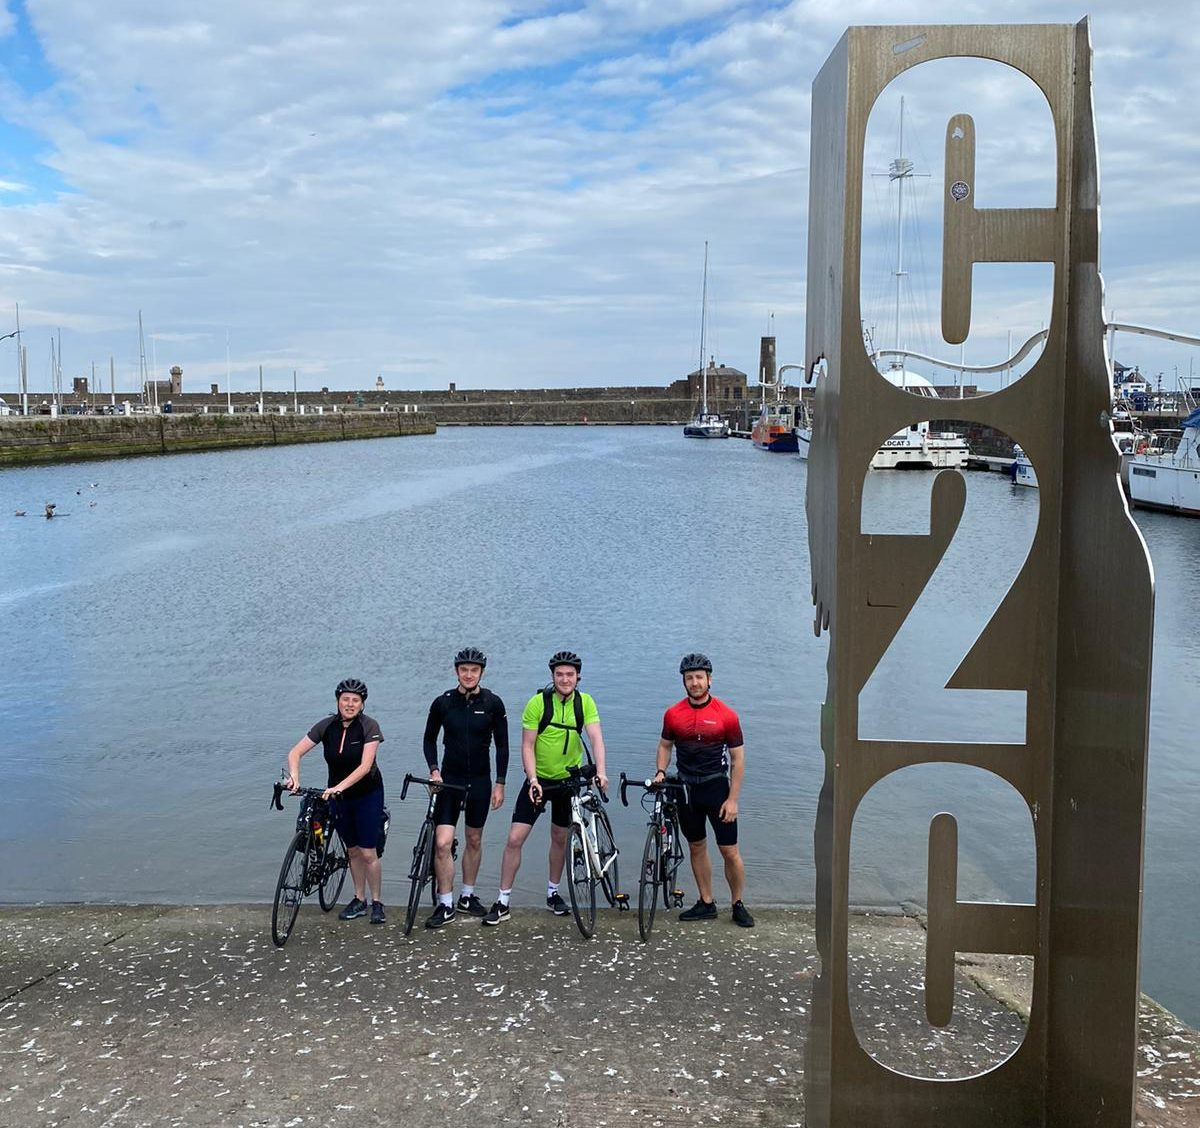 The team on their bikes in front of the sea.